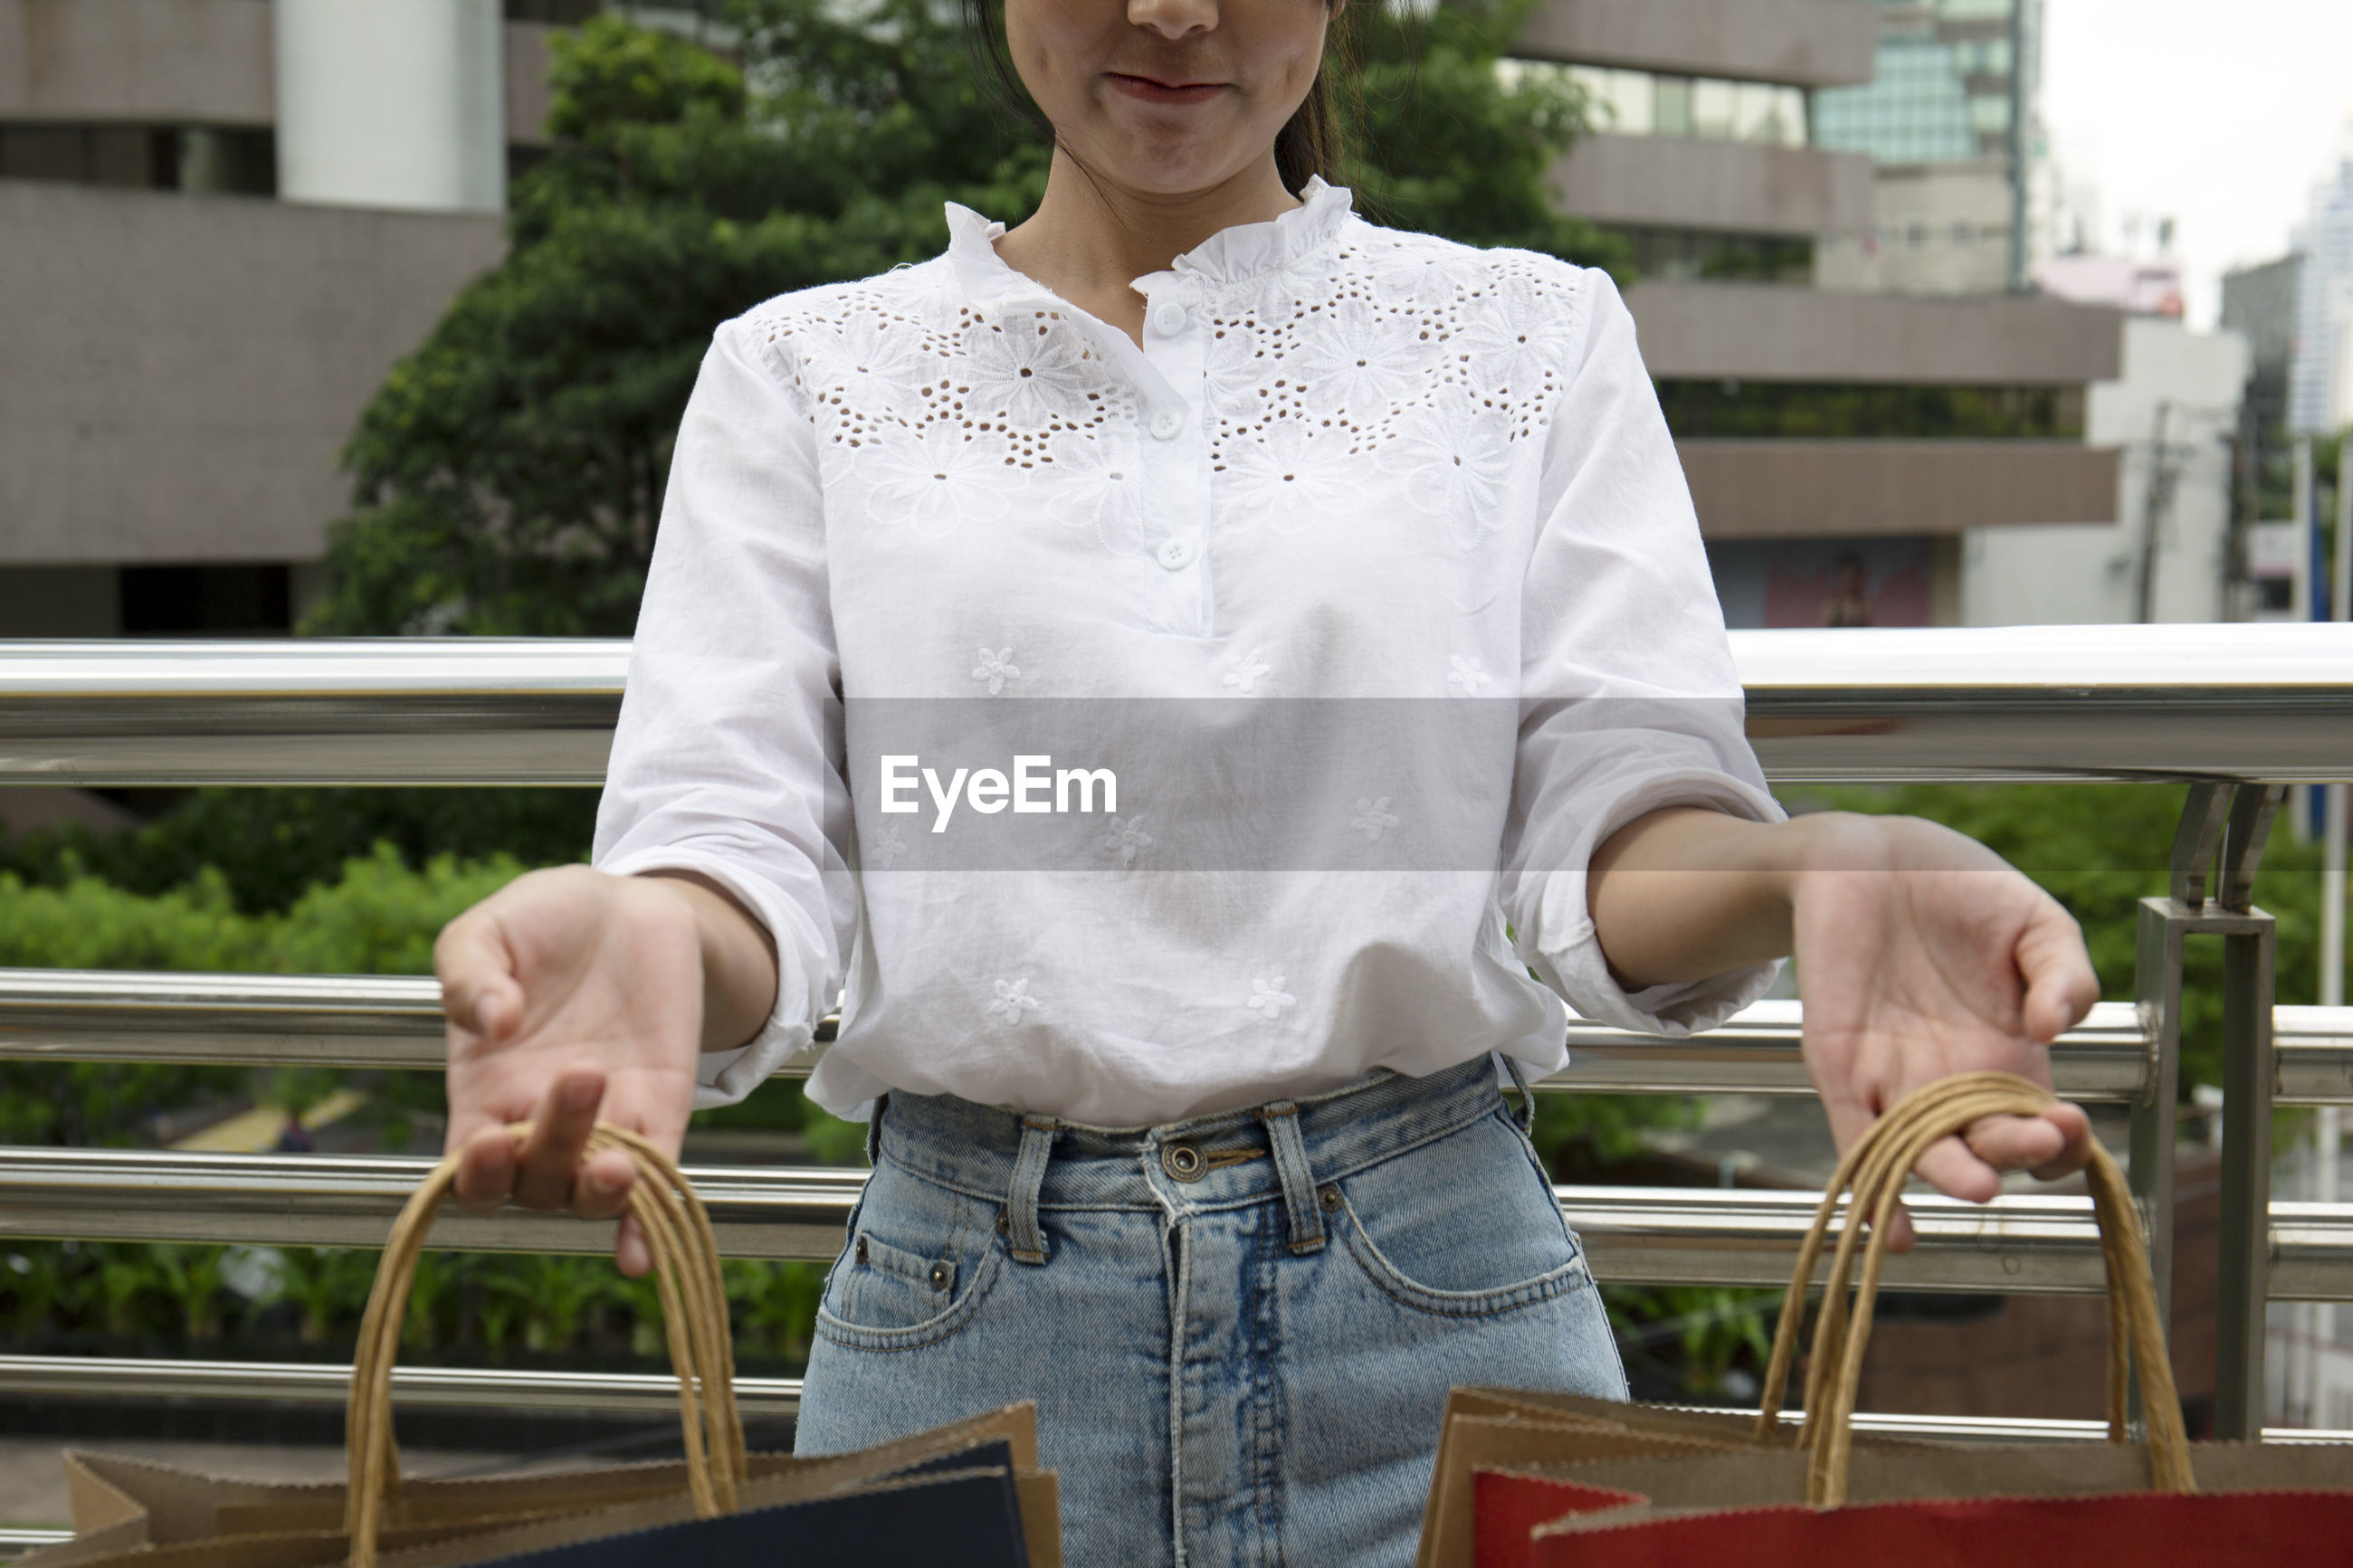 Midsection of woman holding shopping bags while standing by railing against building in city